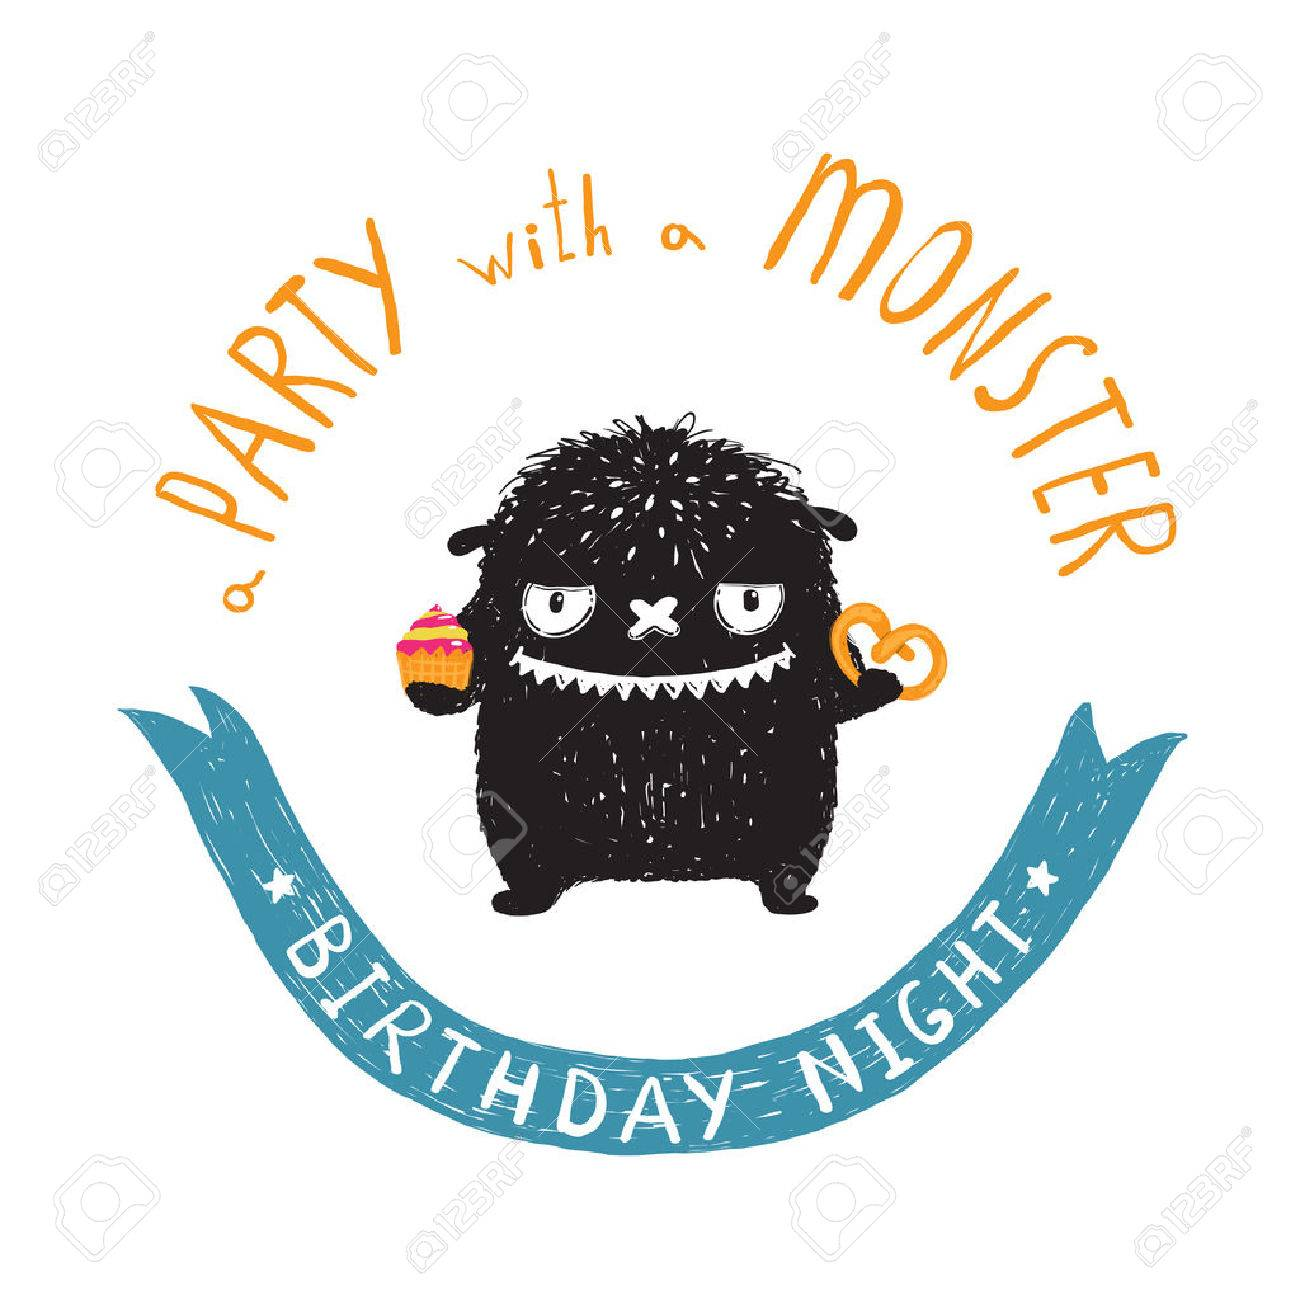 Funny Cute Little Black Monster Birthday Party Greeting Card Or ...